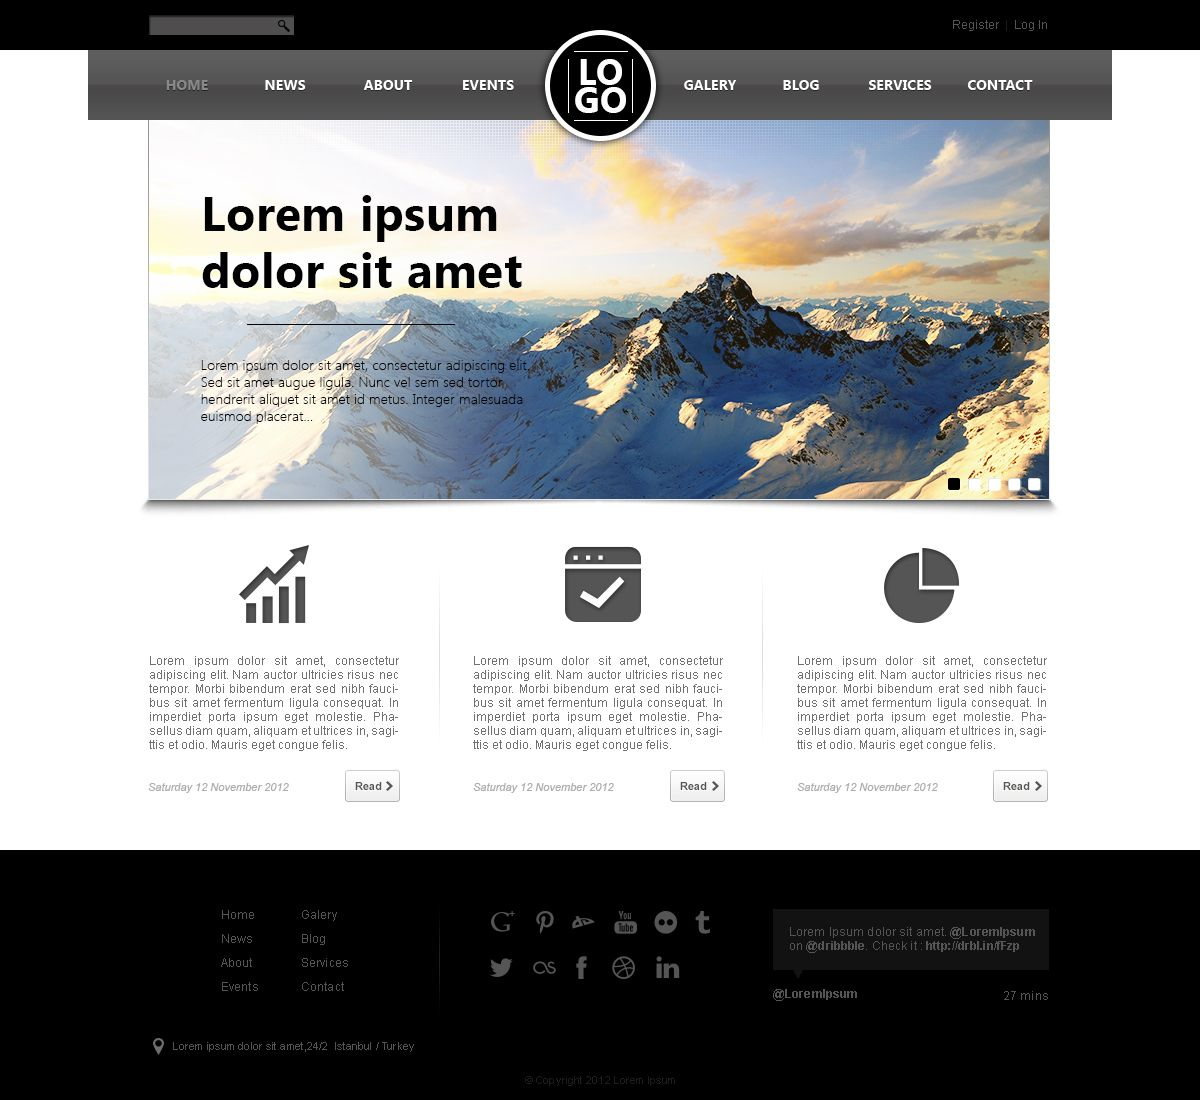 Web Design Services Website Template Psd: 30 Free PSD Web Design Templates